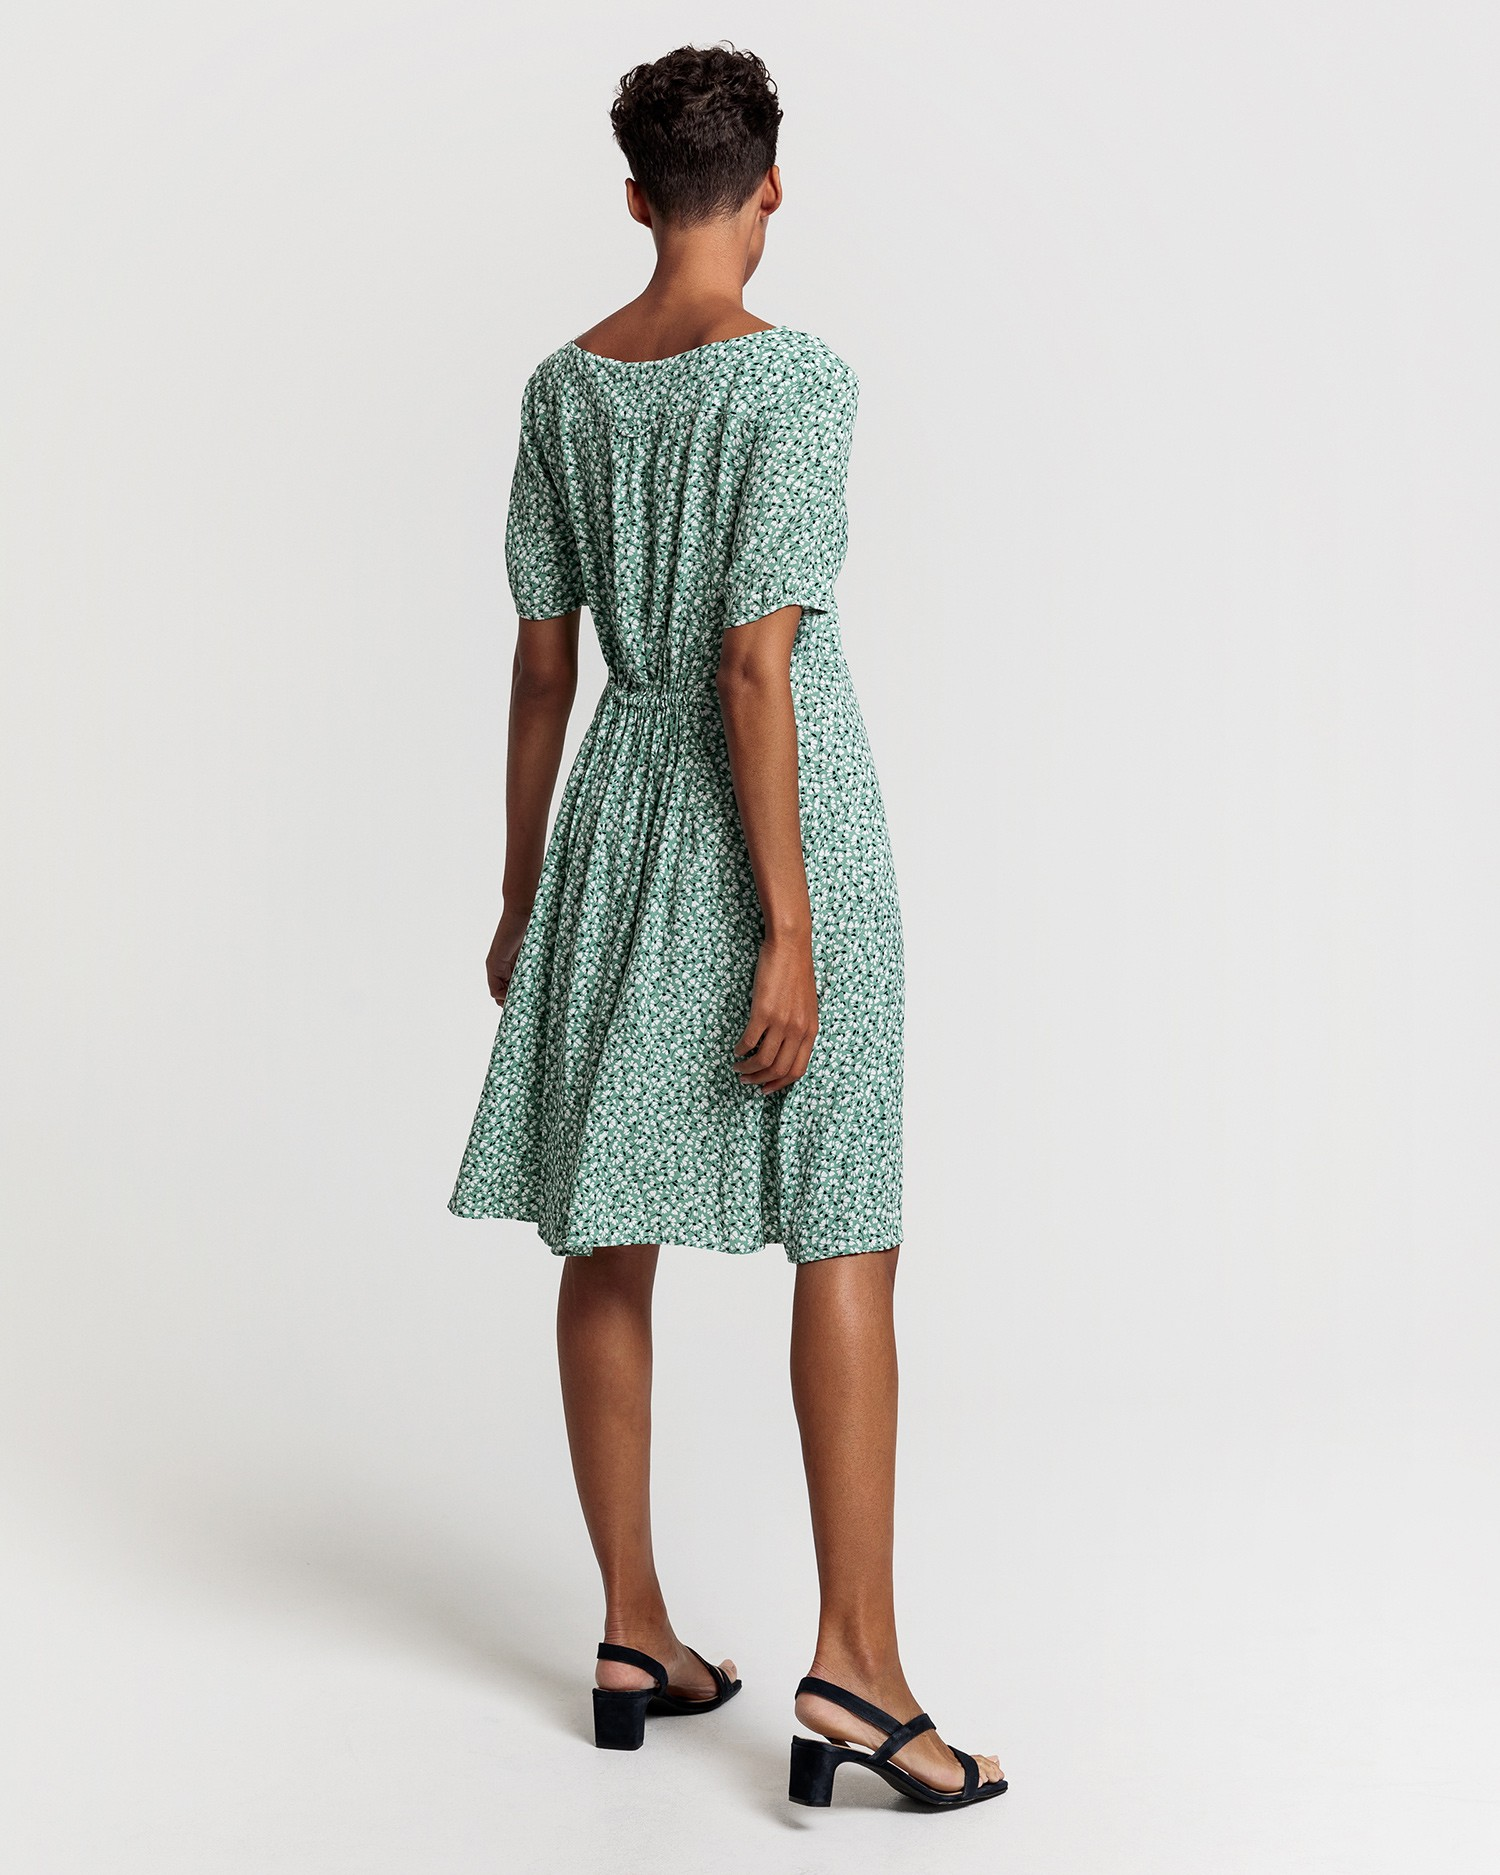 GANT Women's Dress - 4503081